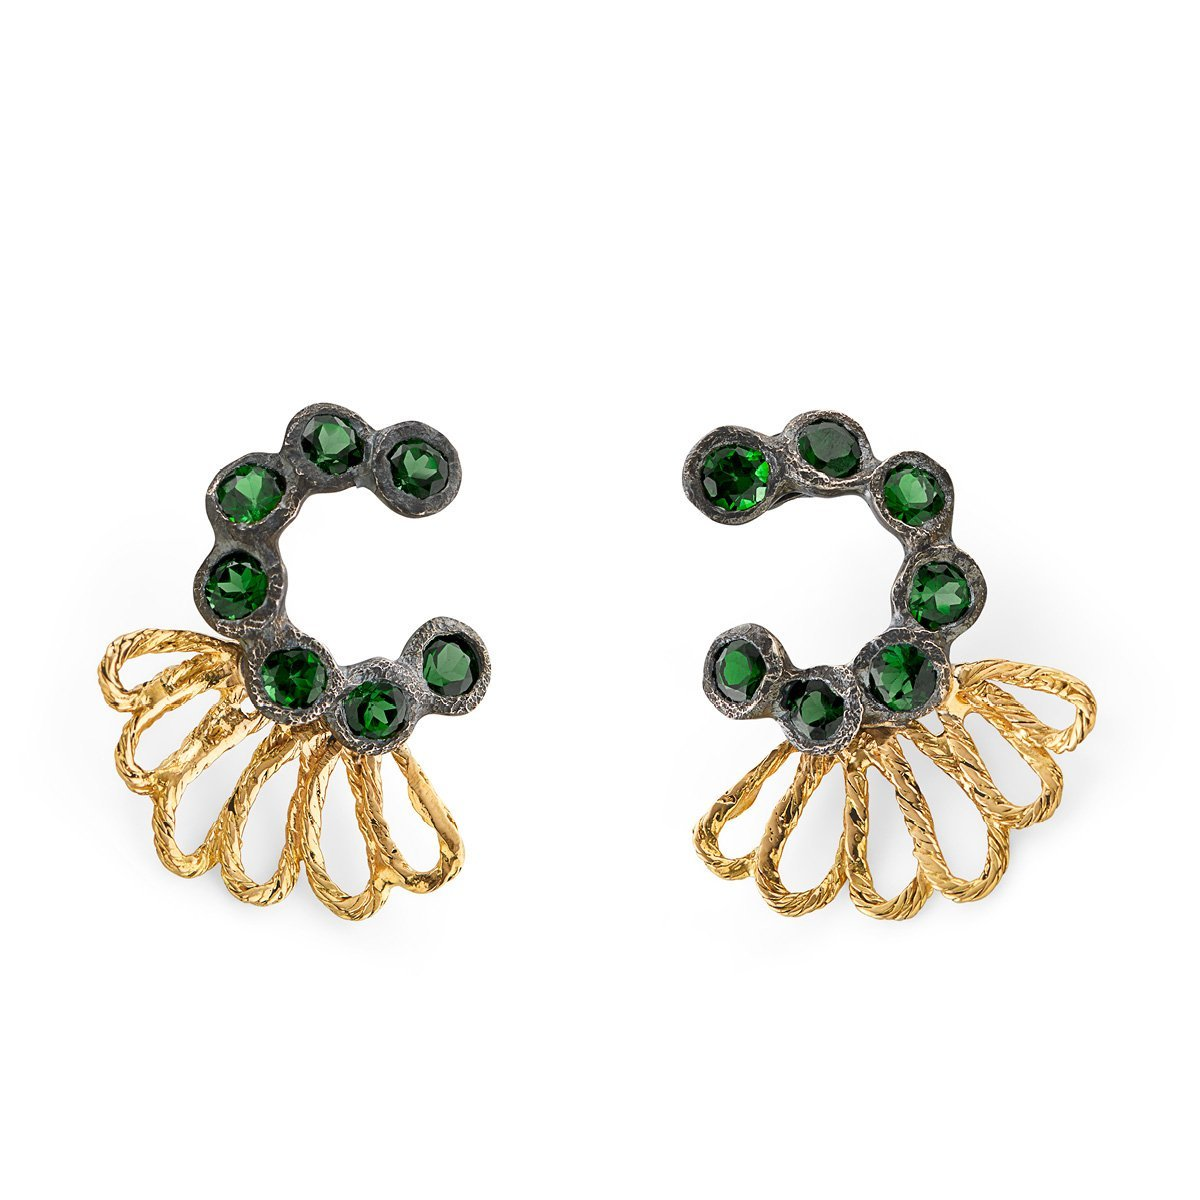 Rikbaktsa Earrings